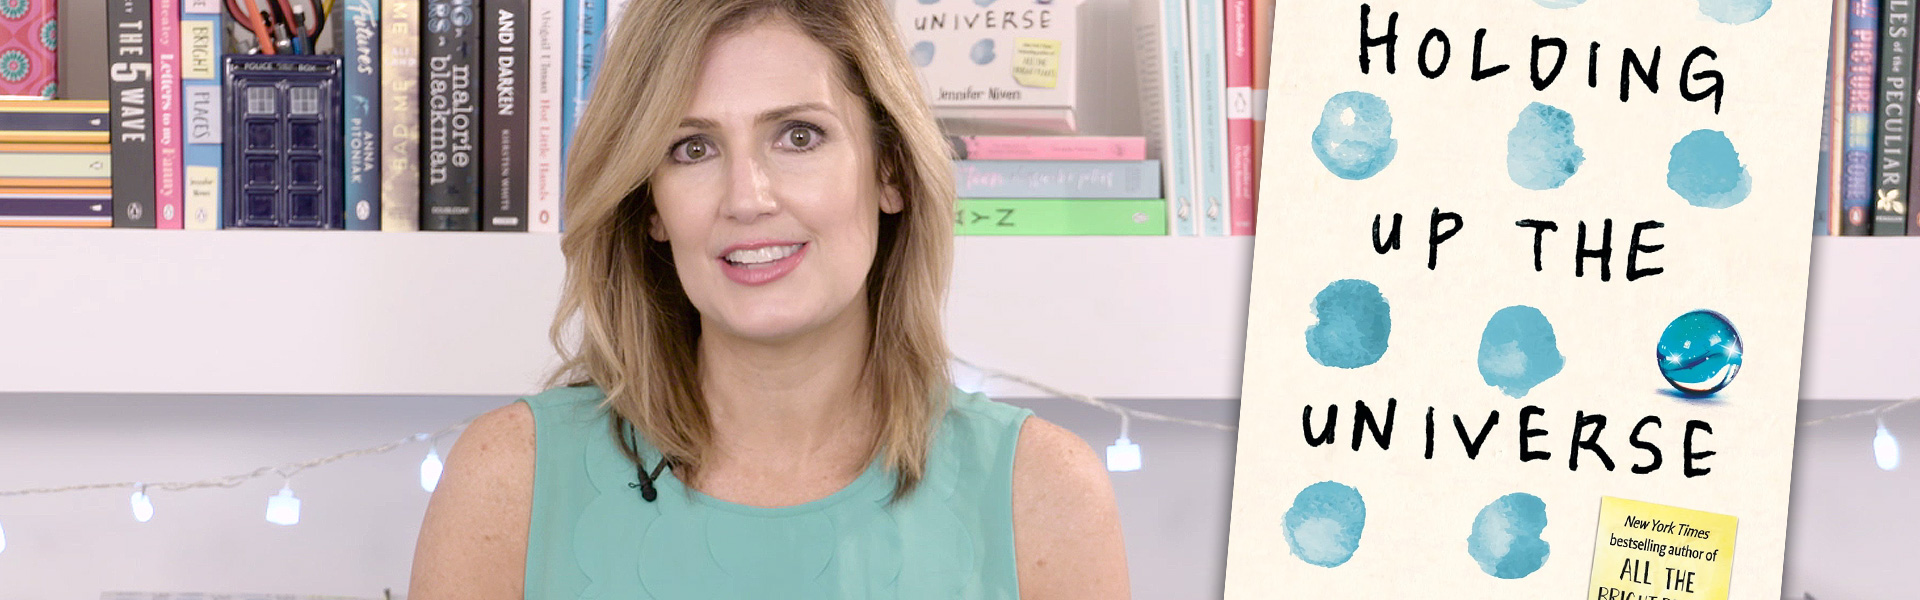 Exclusive Video! Jennifer Niven Discusses the Inspiration for Jack in Holding up the Universe